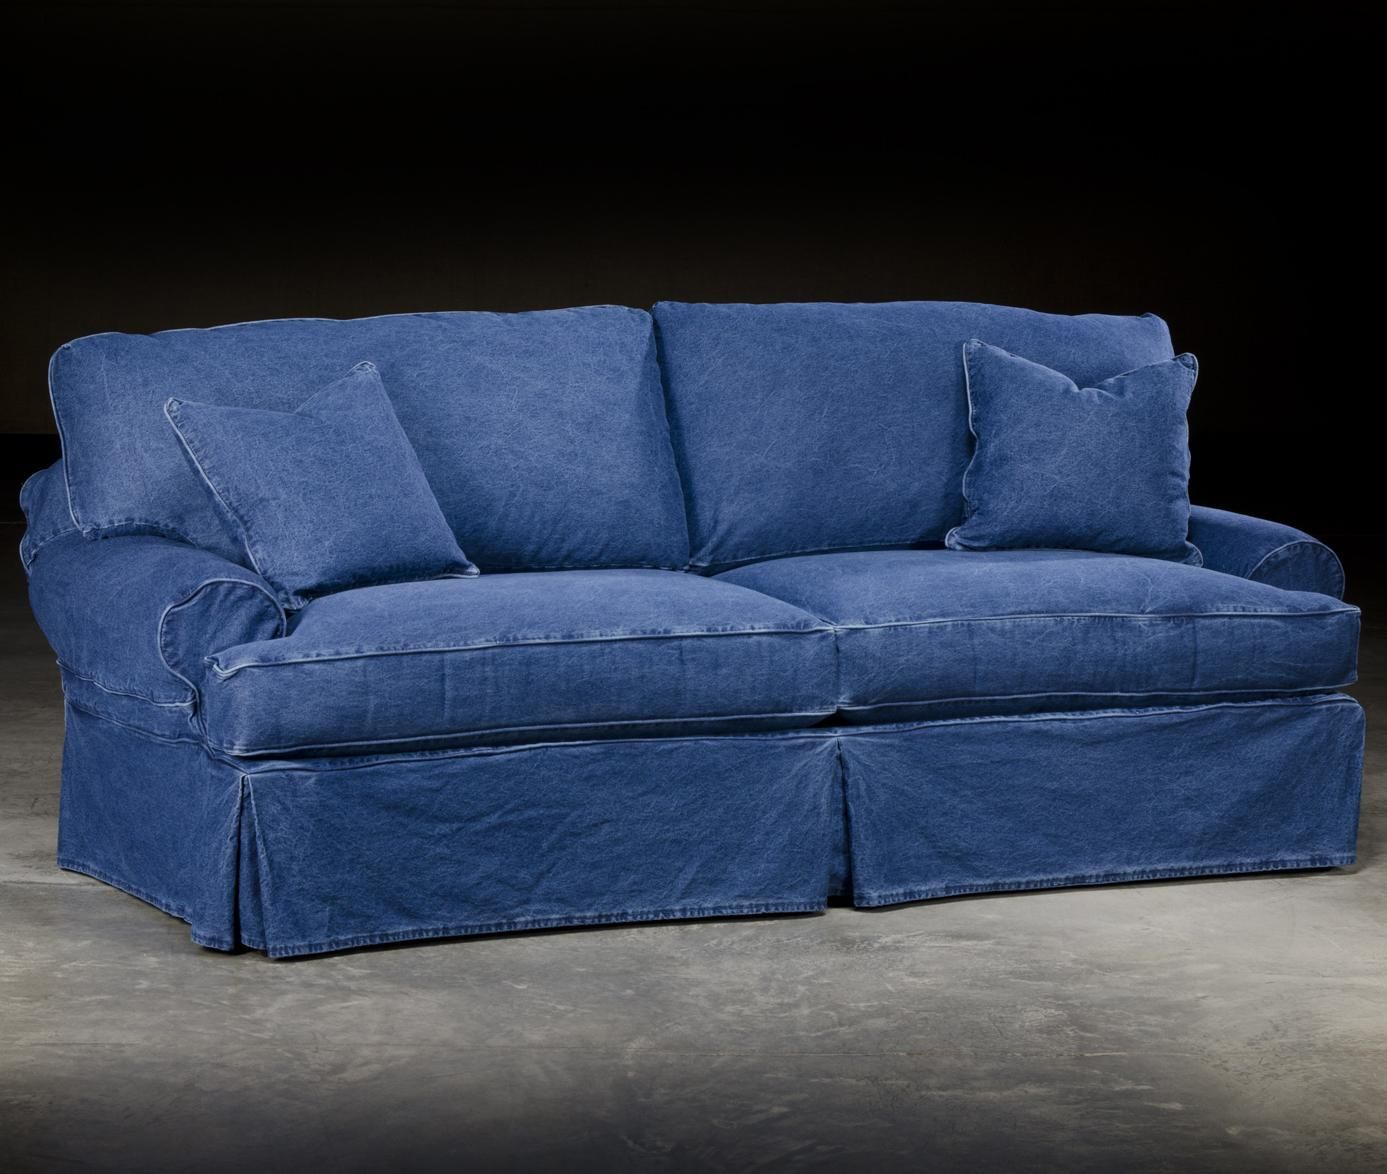 dean reclining sofa leather restoration company by paul robert have one wore it completely out